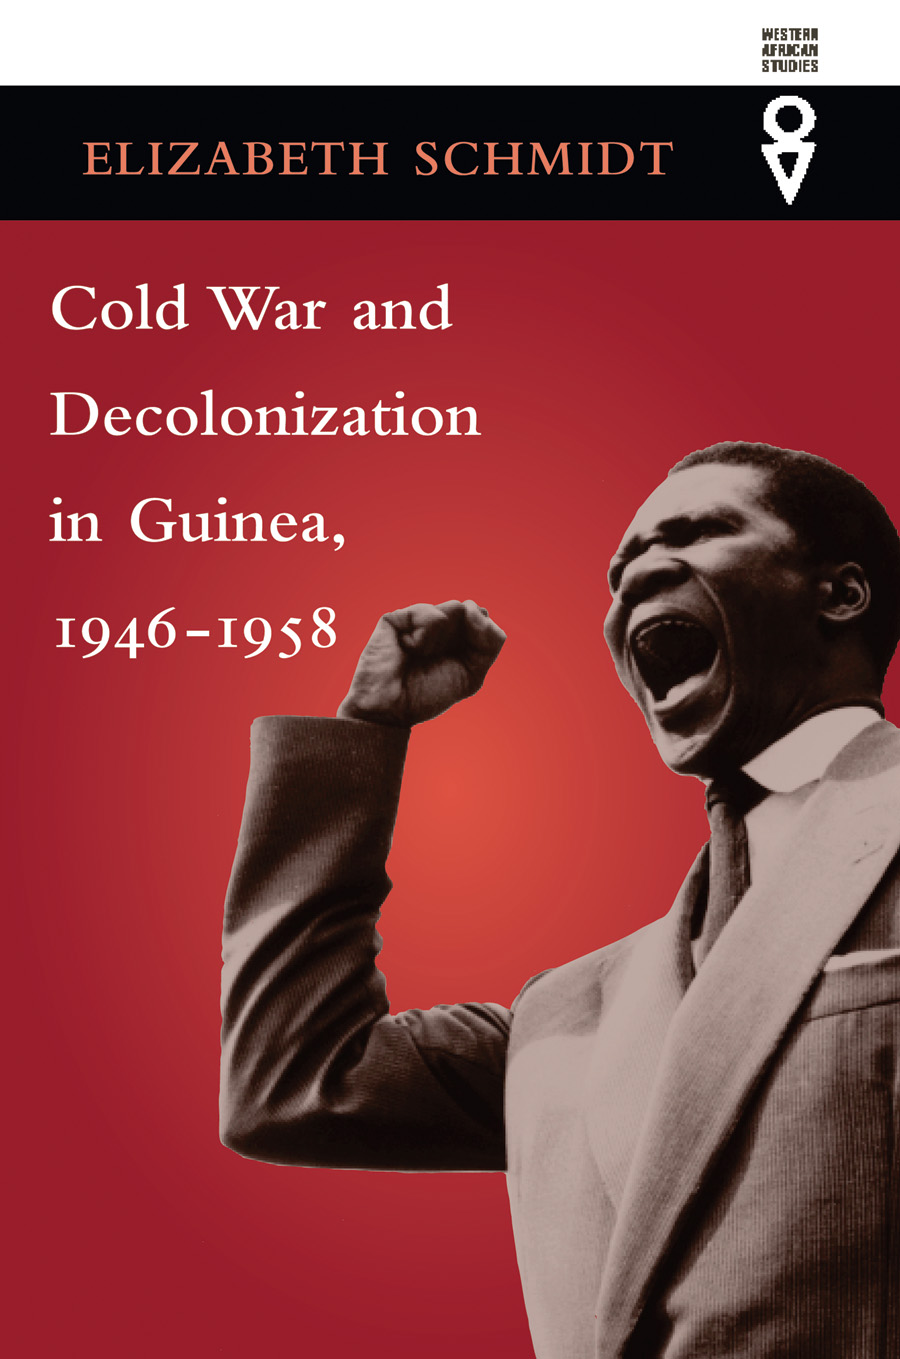 irm bulliet cold war and decolonization Definitions of vocabulary taken from the earth and its peoples: a global history, second edition richard w bulliet, pamela kyle crossley, daniel r headrick, steven w hirsch, lyman l johnson, david northrup // chapter 33: the cold war and decolonization.